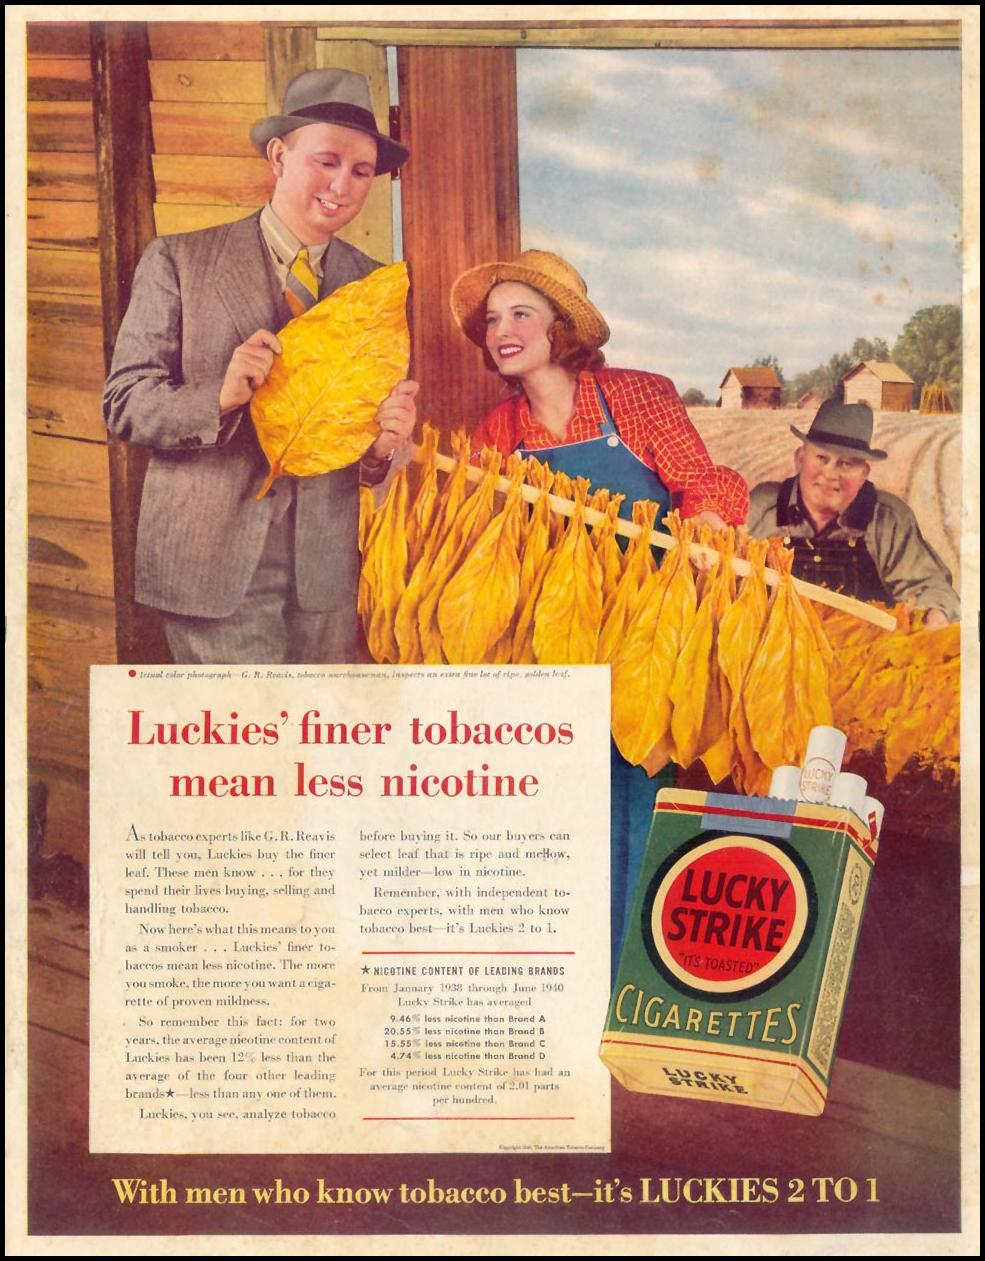 LUCKY STRIKE CIGARETTES LIFE 09/16/1940 BACK COVER